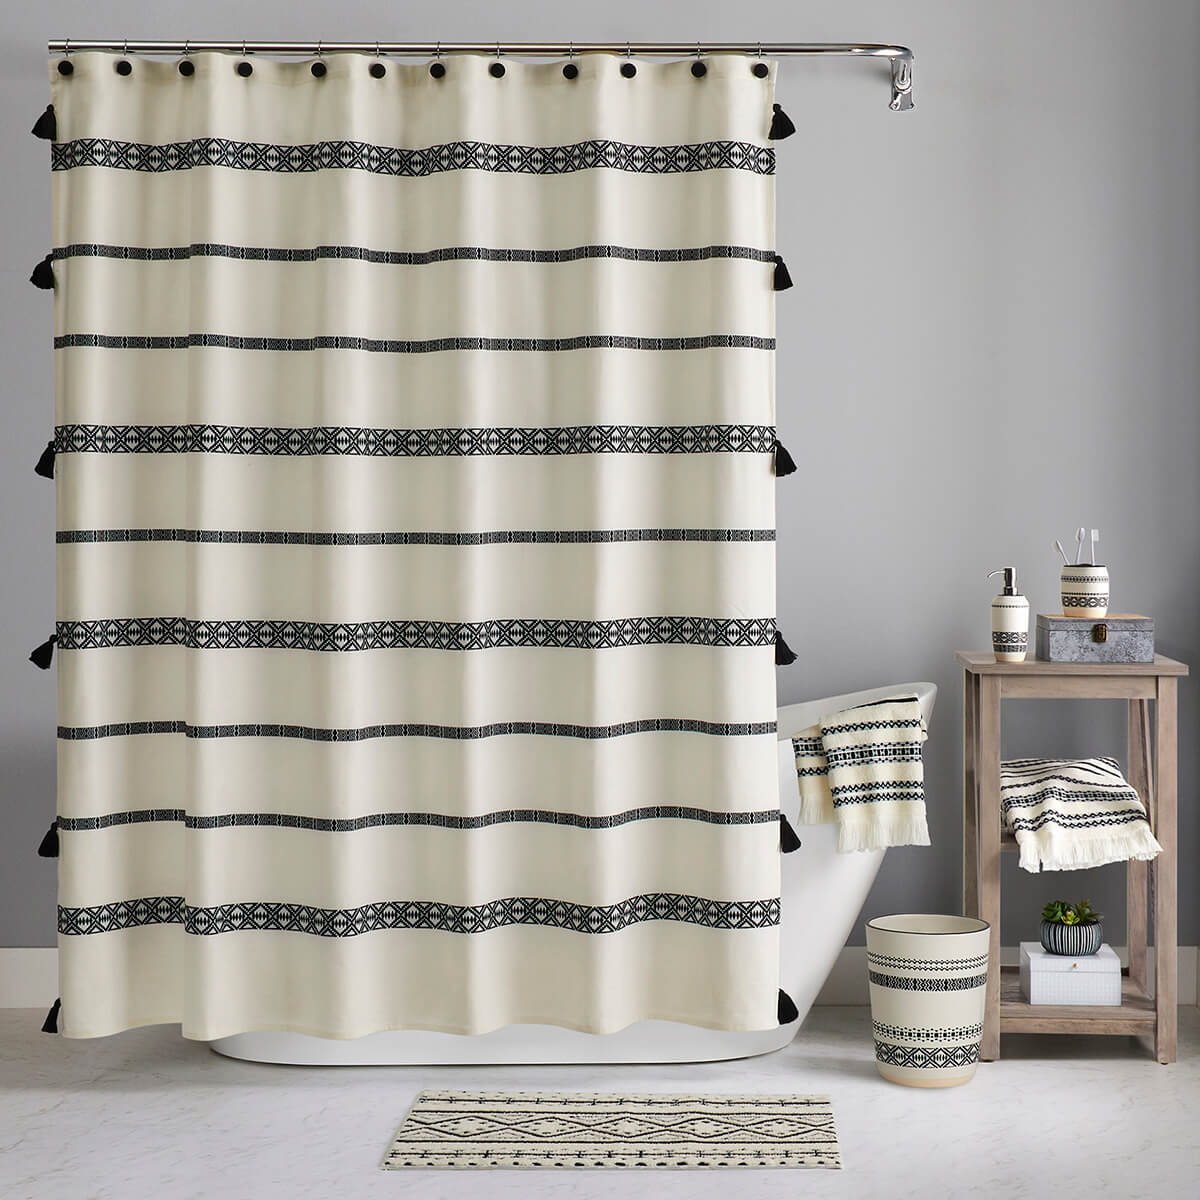 Triangles and Tassels Taking Center Stage in the Bathroom